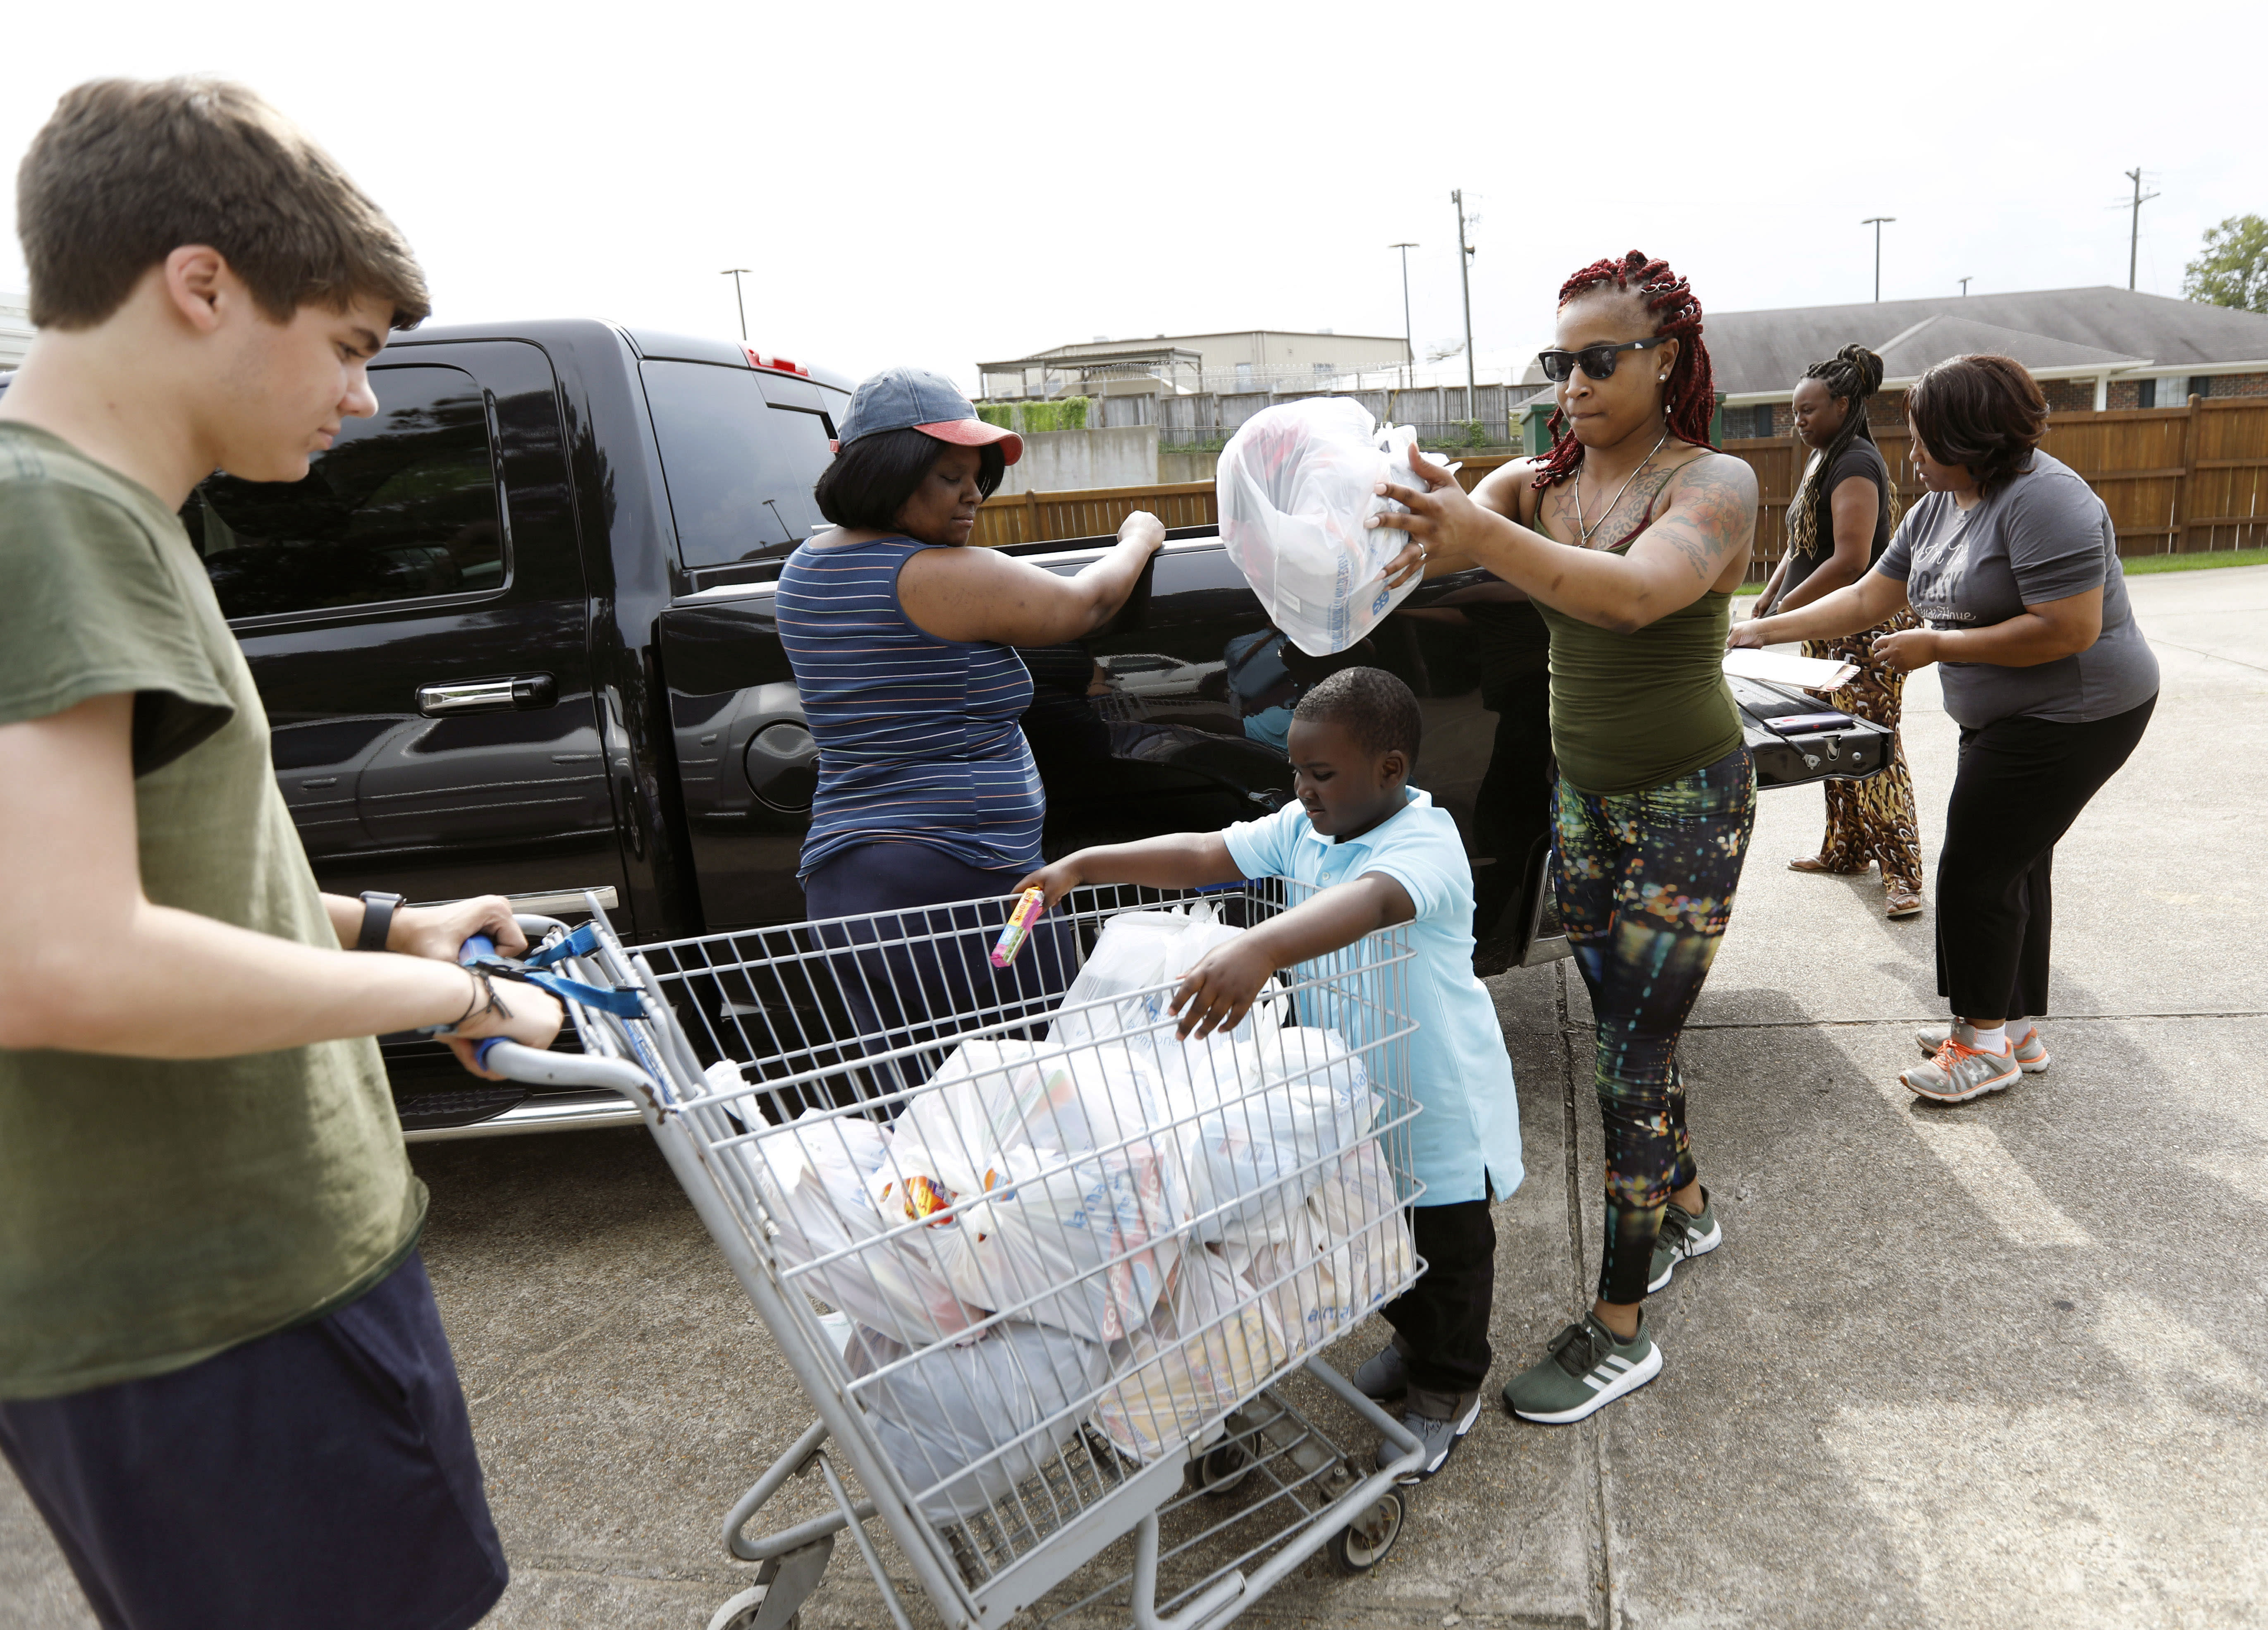 In this Thursday, Aug. 8, 2019 photo, Jesse Van Fleet, left, assists Jasmine Ward and Myles Wright, 5, of Jackson, unload donated items for the pantry at the Carlisle Crisis Center in Forest, Miss. The center, a ministry of Scott County Baptist Association, says they will need more food items to help out the families affected by the fallout of Wednesday's raid by U.S. immigration officials at poultry plants Koch Foods and PH Foods in neighboring Morton. The raids were part of a large-scale operation targeting owners as well as undocumented employees. (AP Photo/Rogelio V. Solis)